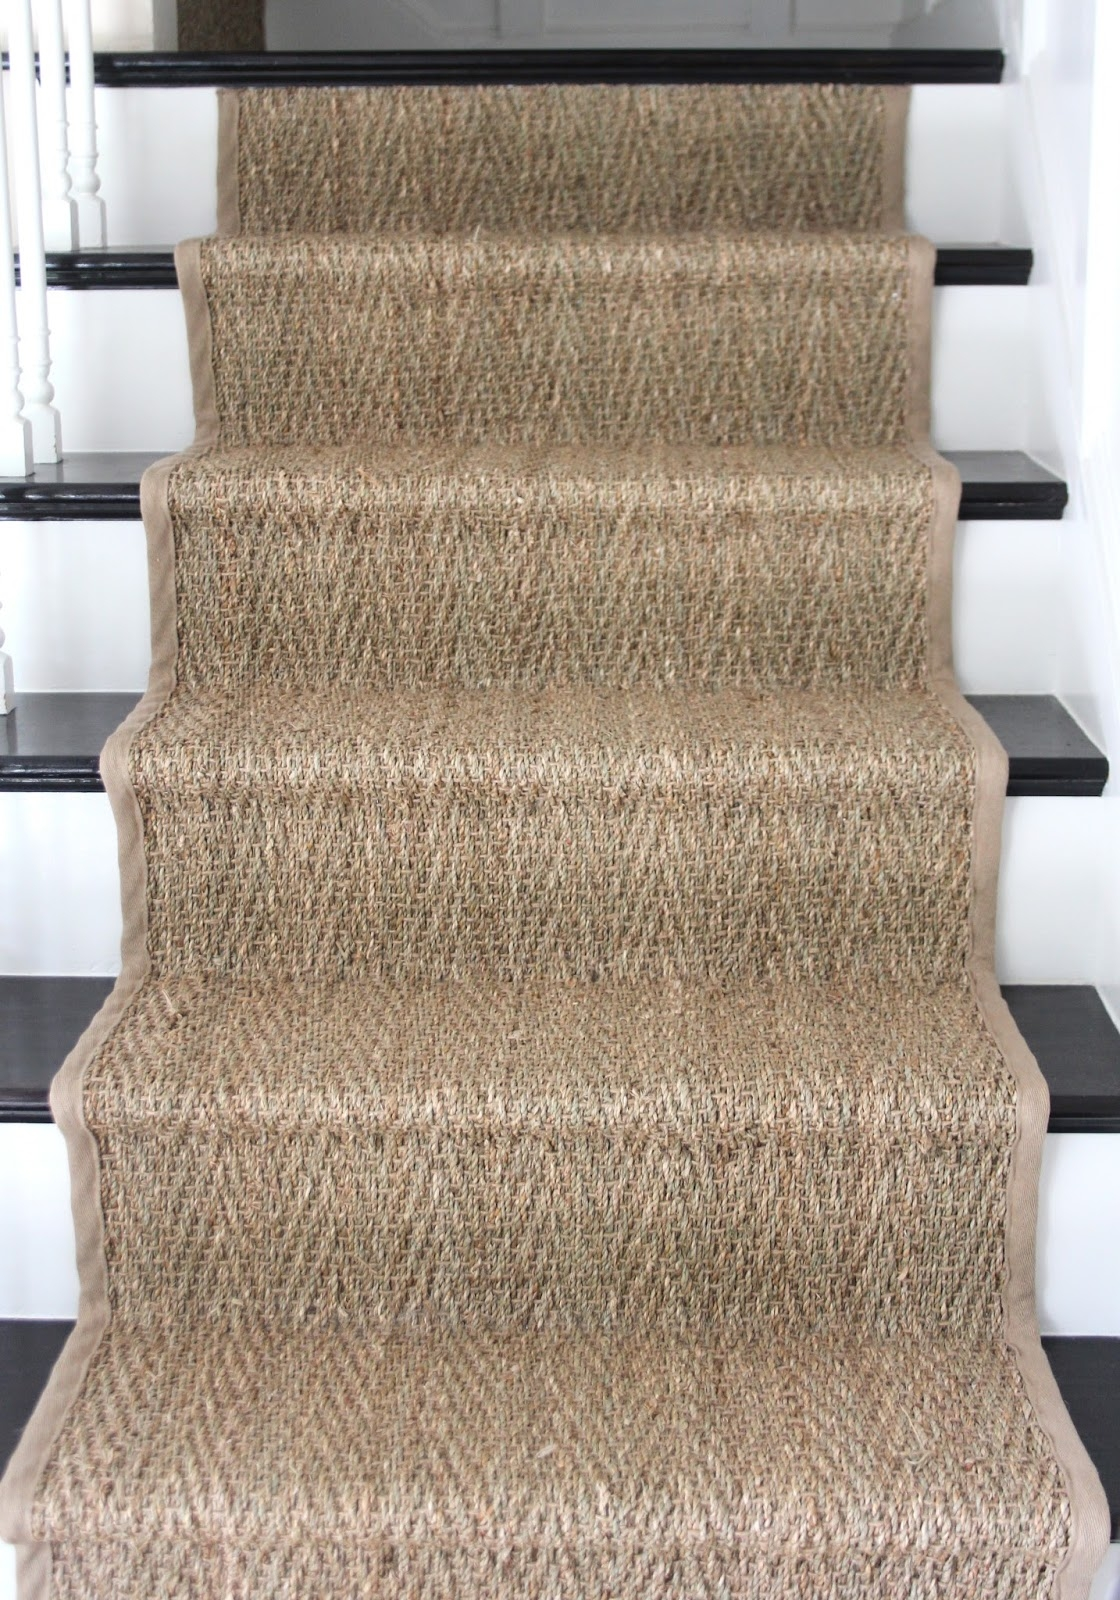 How To Seagrass Stair Runner Shine Your Light In Sisal Stair Tread Rugs (Image 8 of 15)